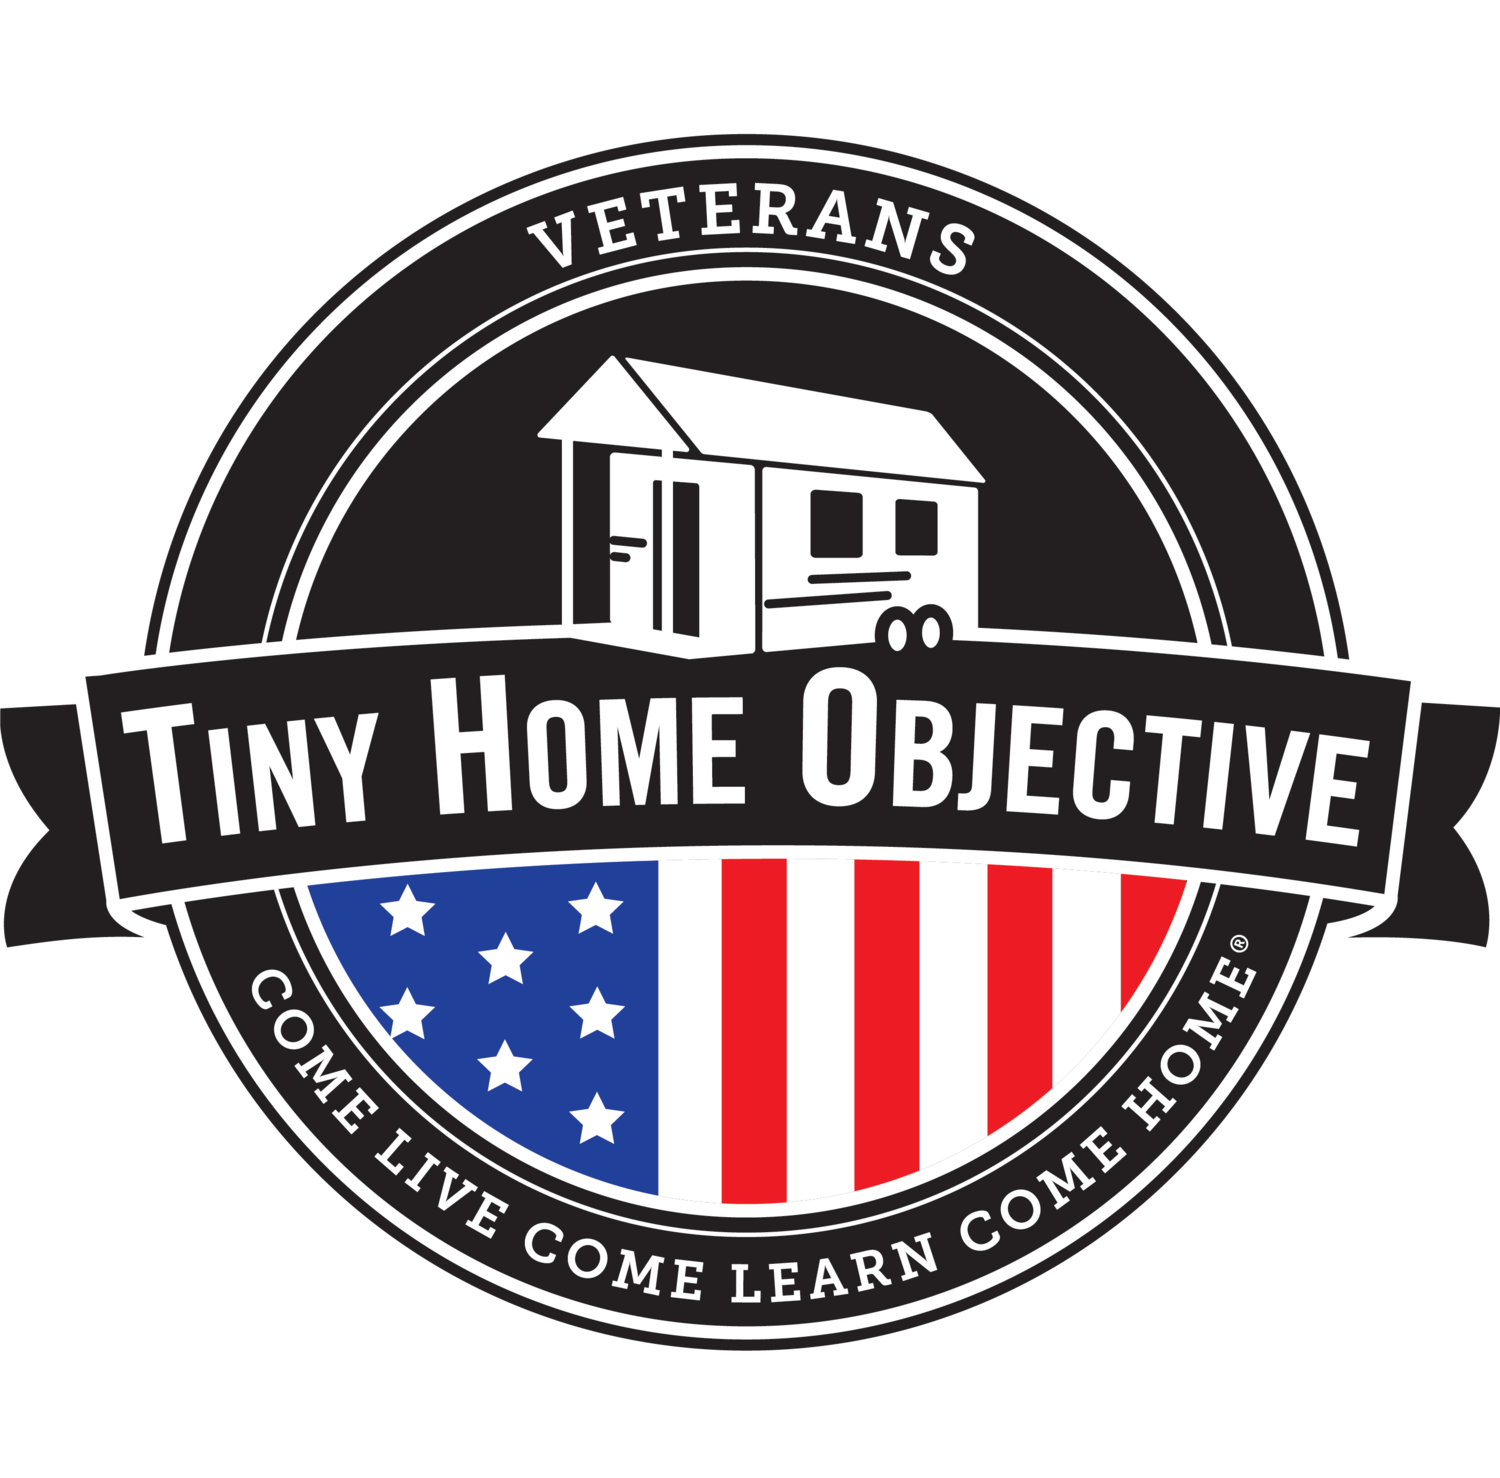 Tiny Home Objective